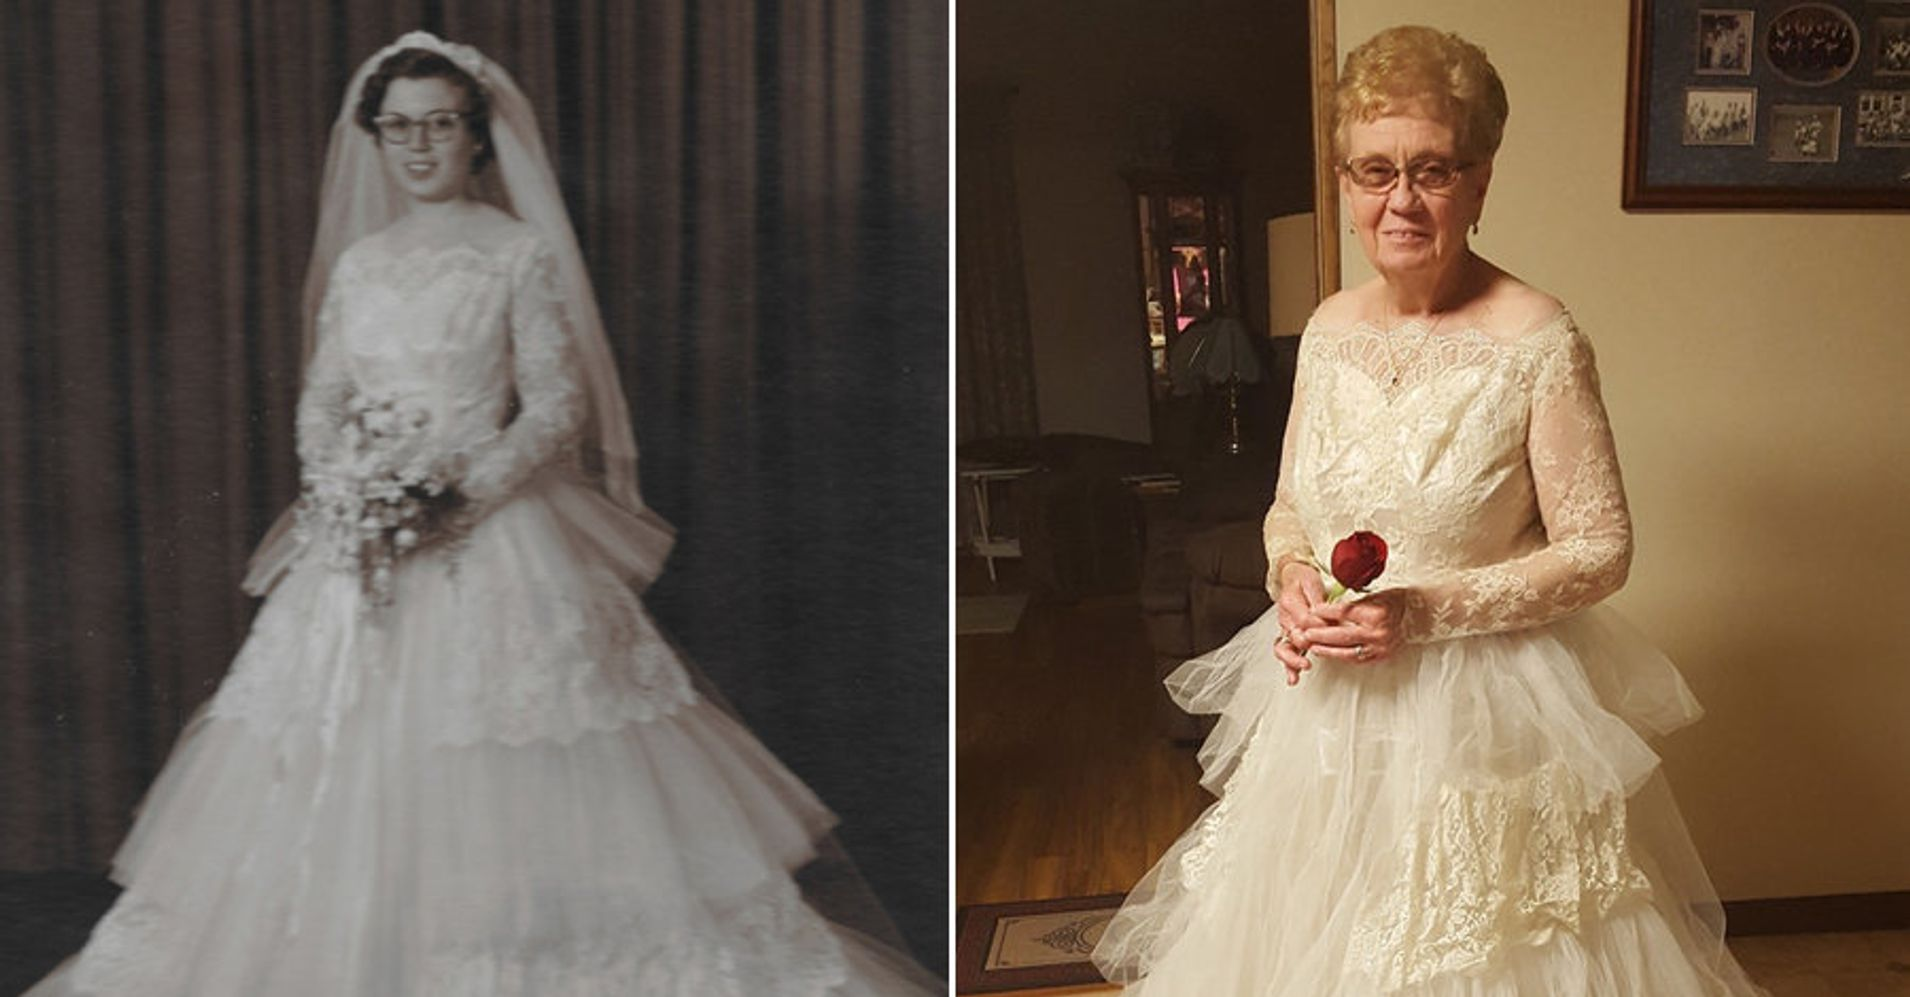 For 60th anniversary great grandma tries on wedding dress for Grandmother dresses for grandson s wedding